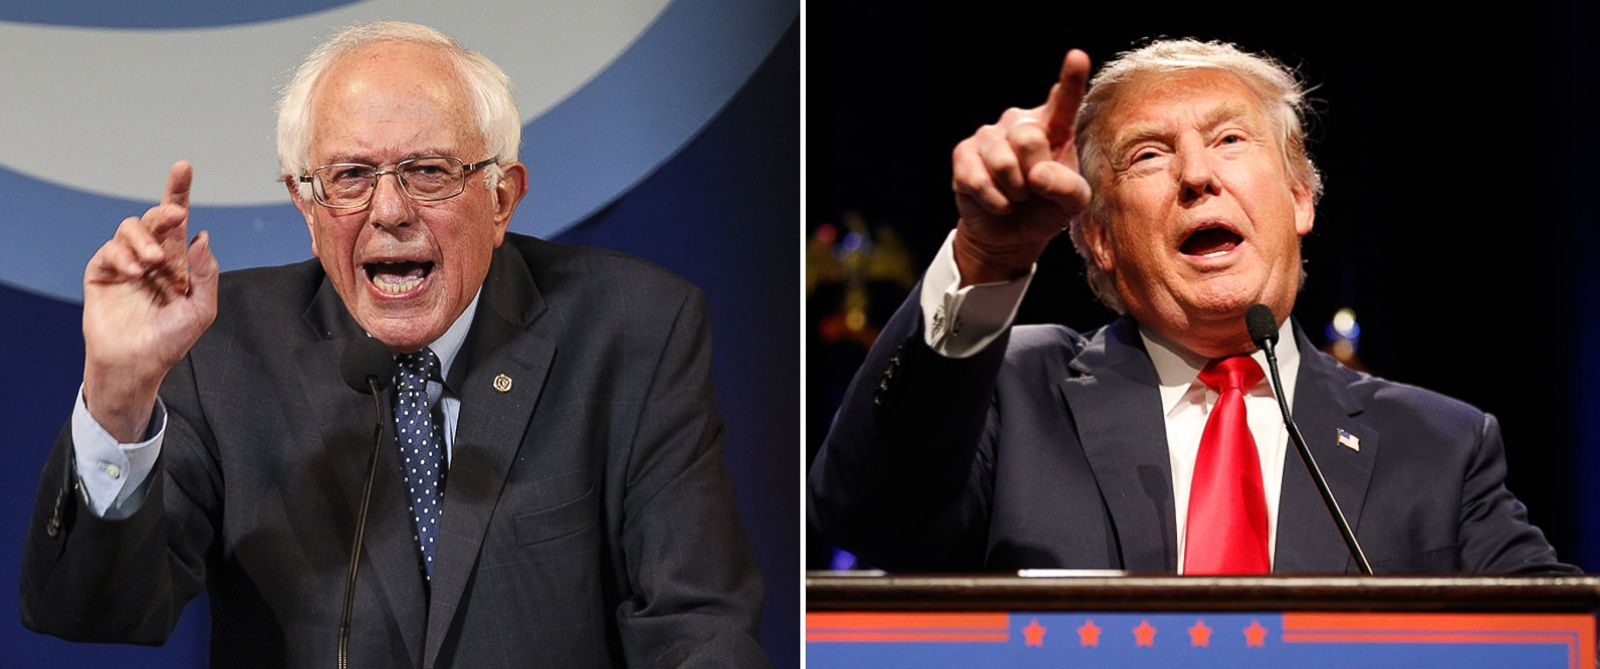 marketing-bernie-vs-donald